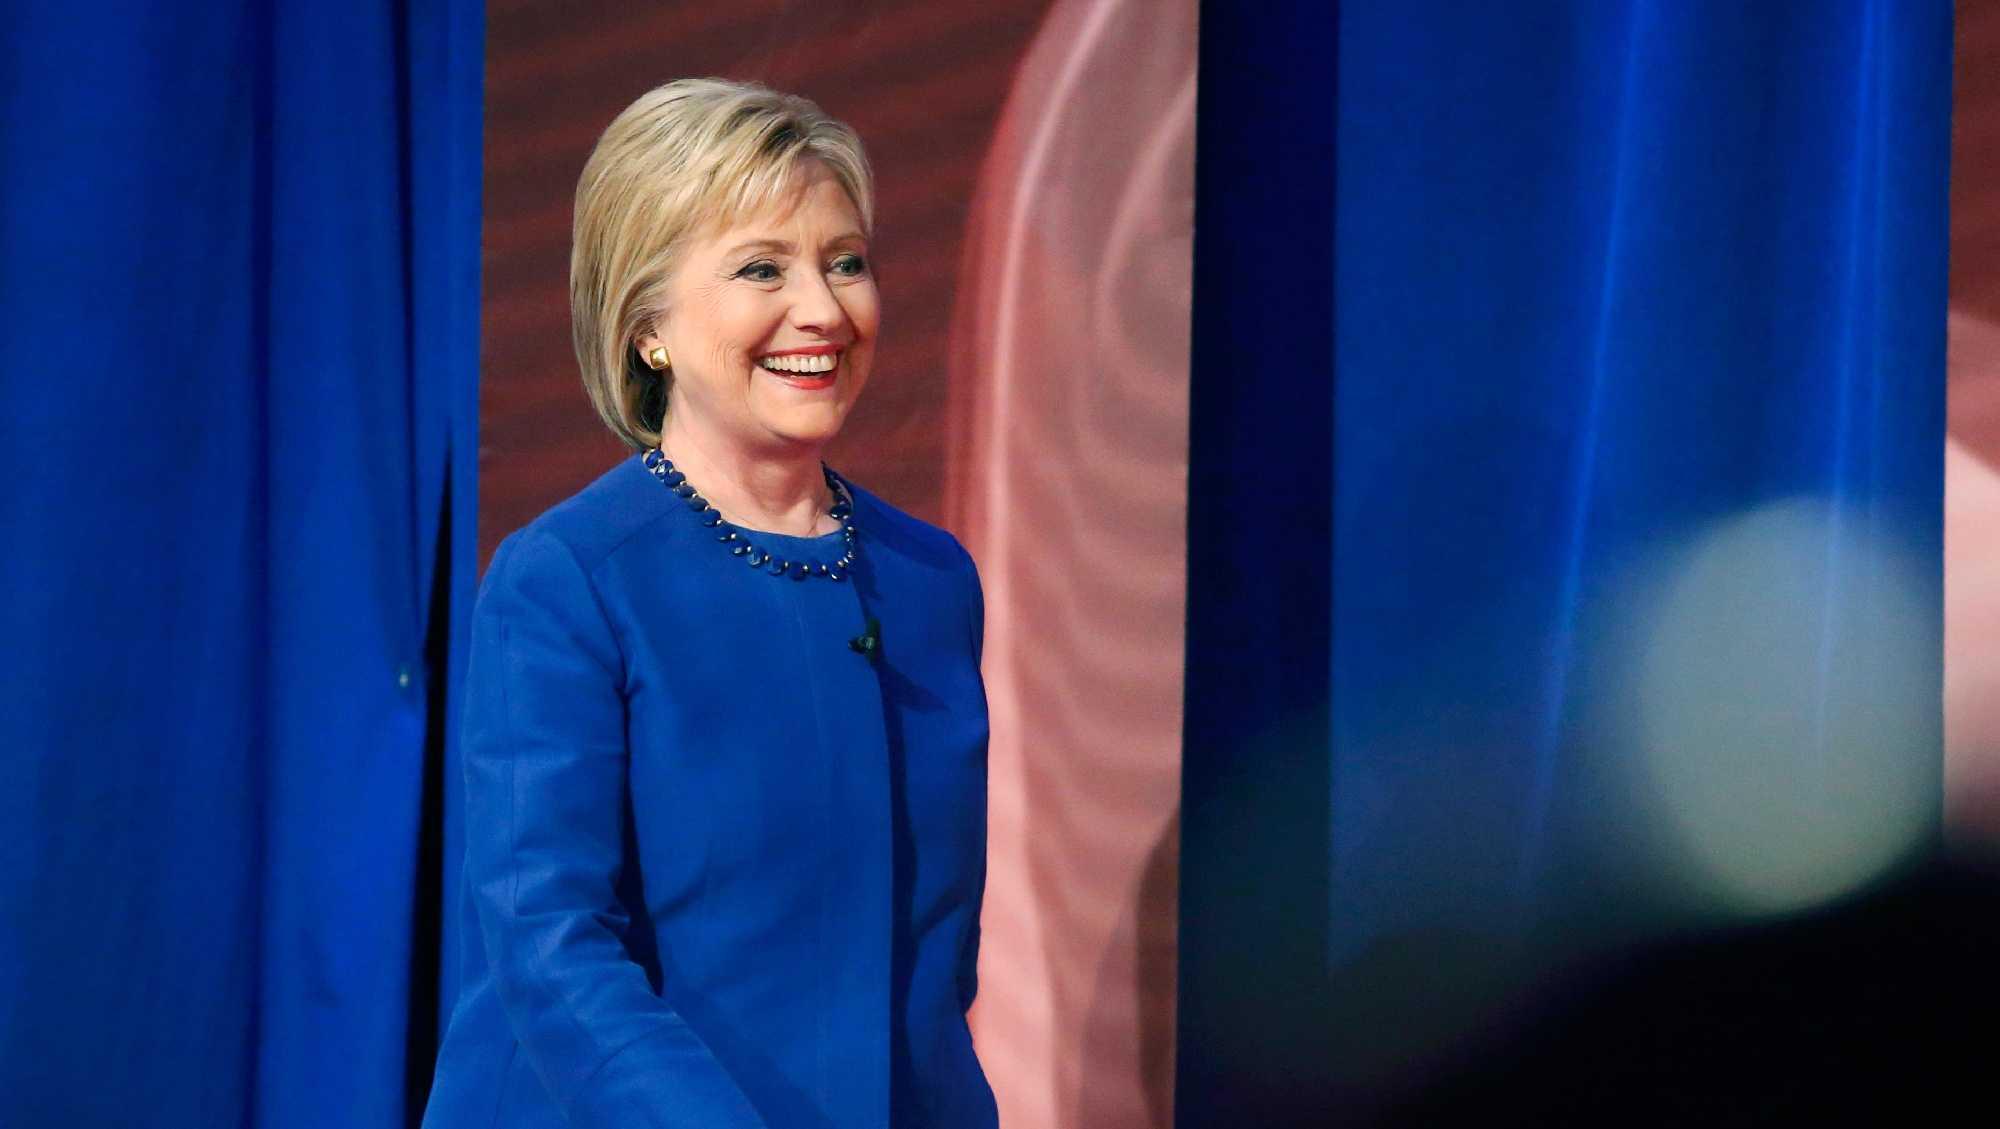 Democratic Presidential nominee Hillary Clinton is in Kansas City for a speech to the National Baptist Convention USA